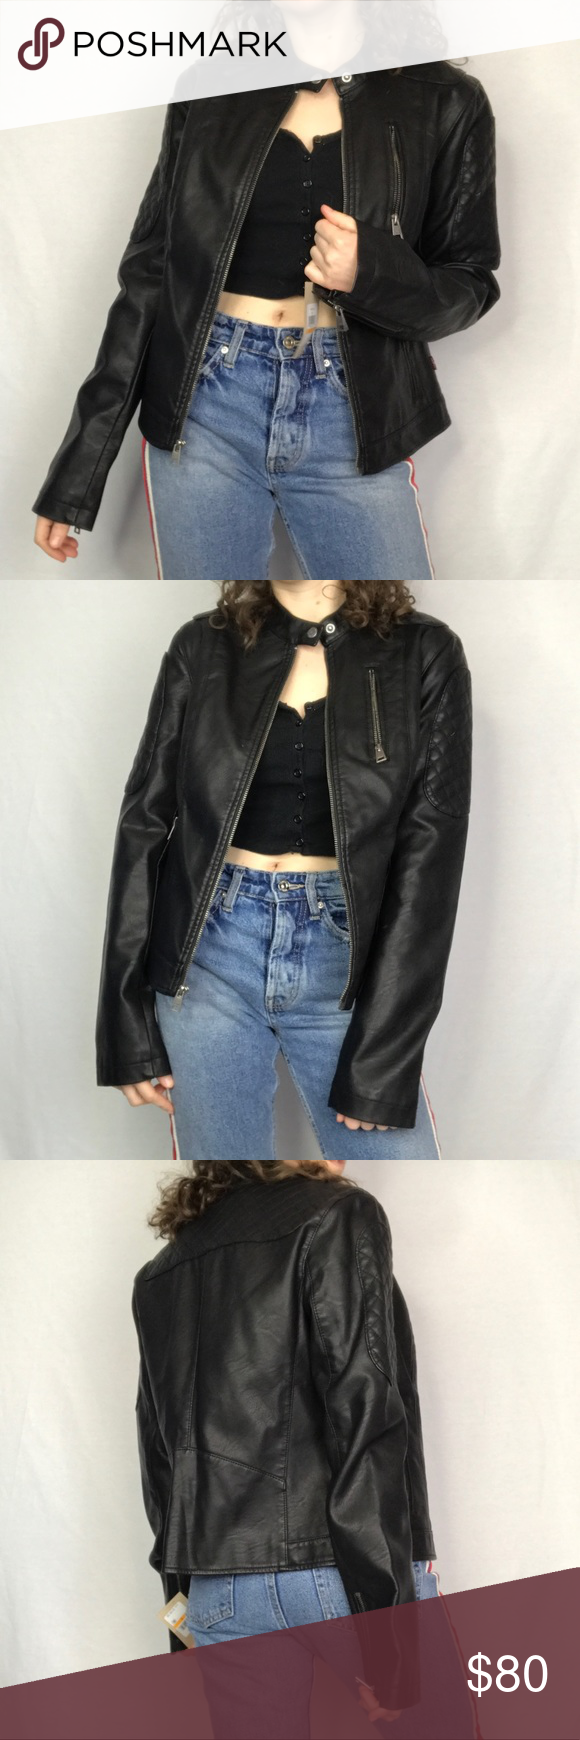 NWT Levi's Faux Leather Jacket in Black Jackets, Faux